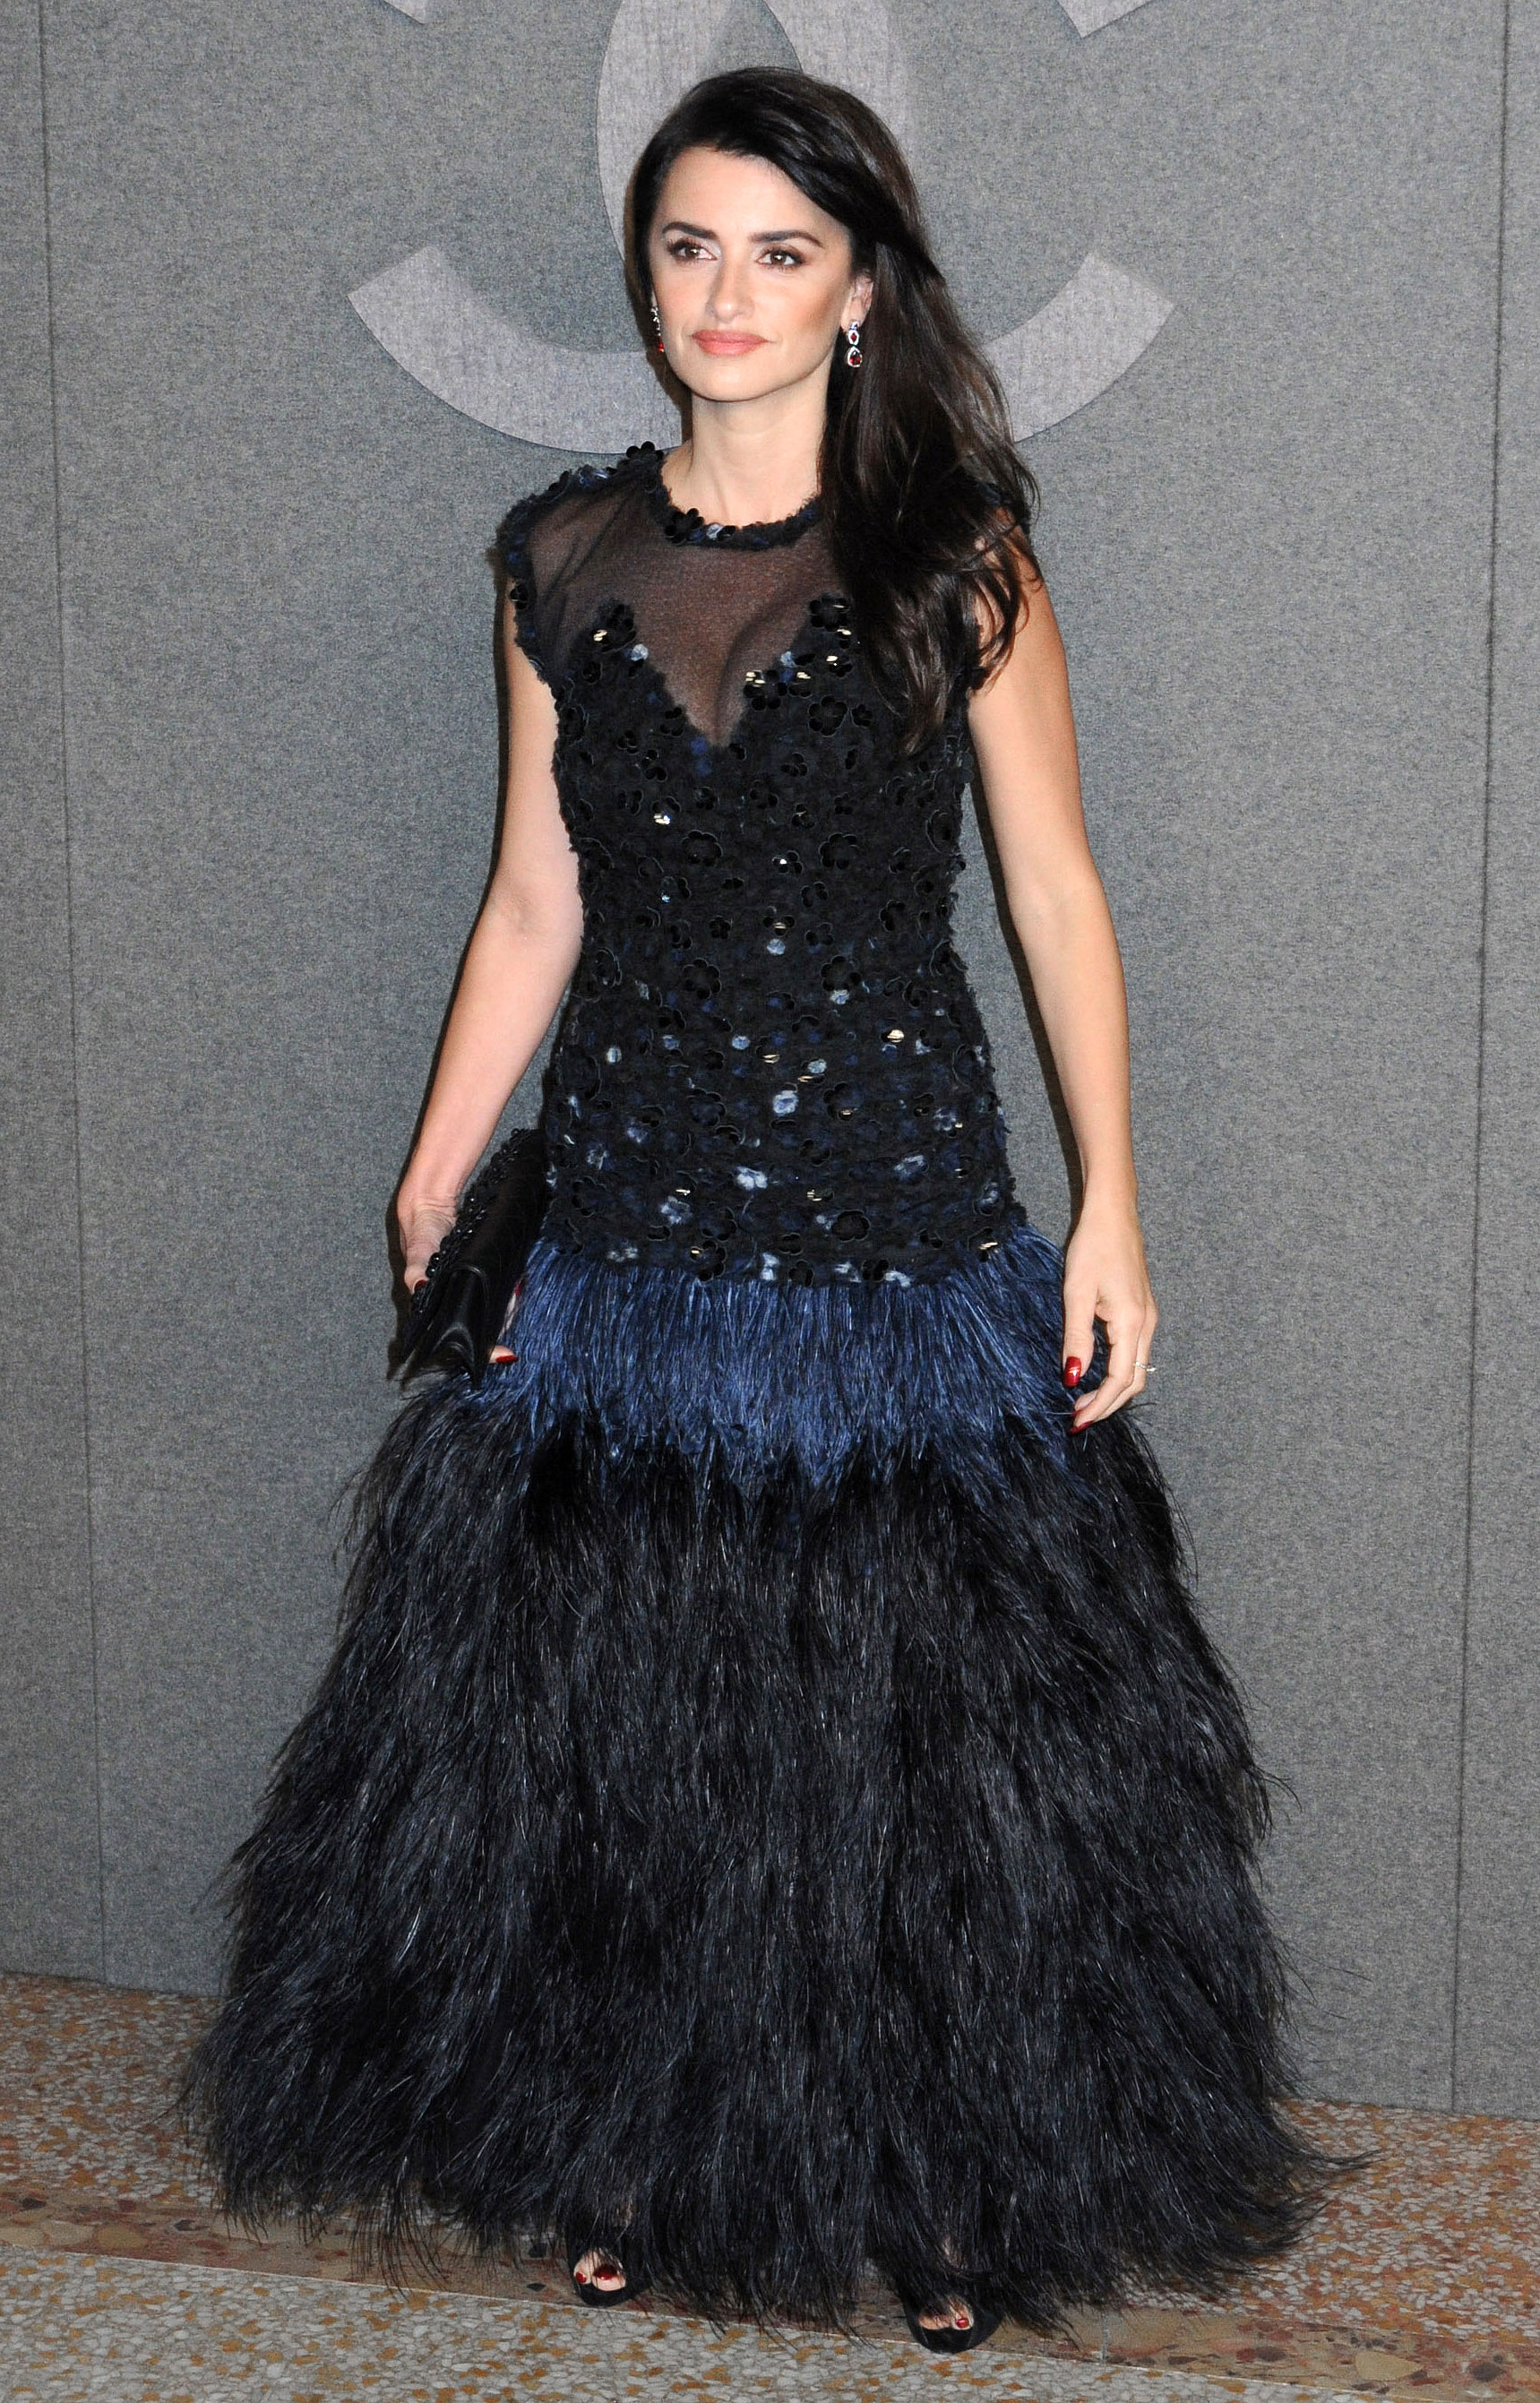 penelope-cruz - The Everybody Knows actress was the belle of the ball in a midnight blue feathered gown.